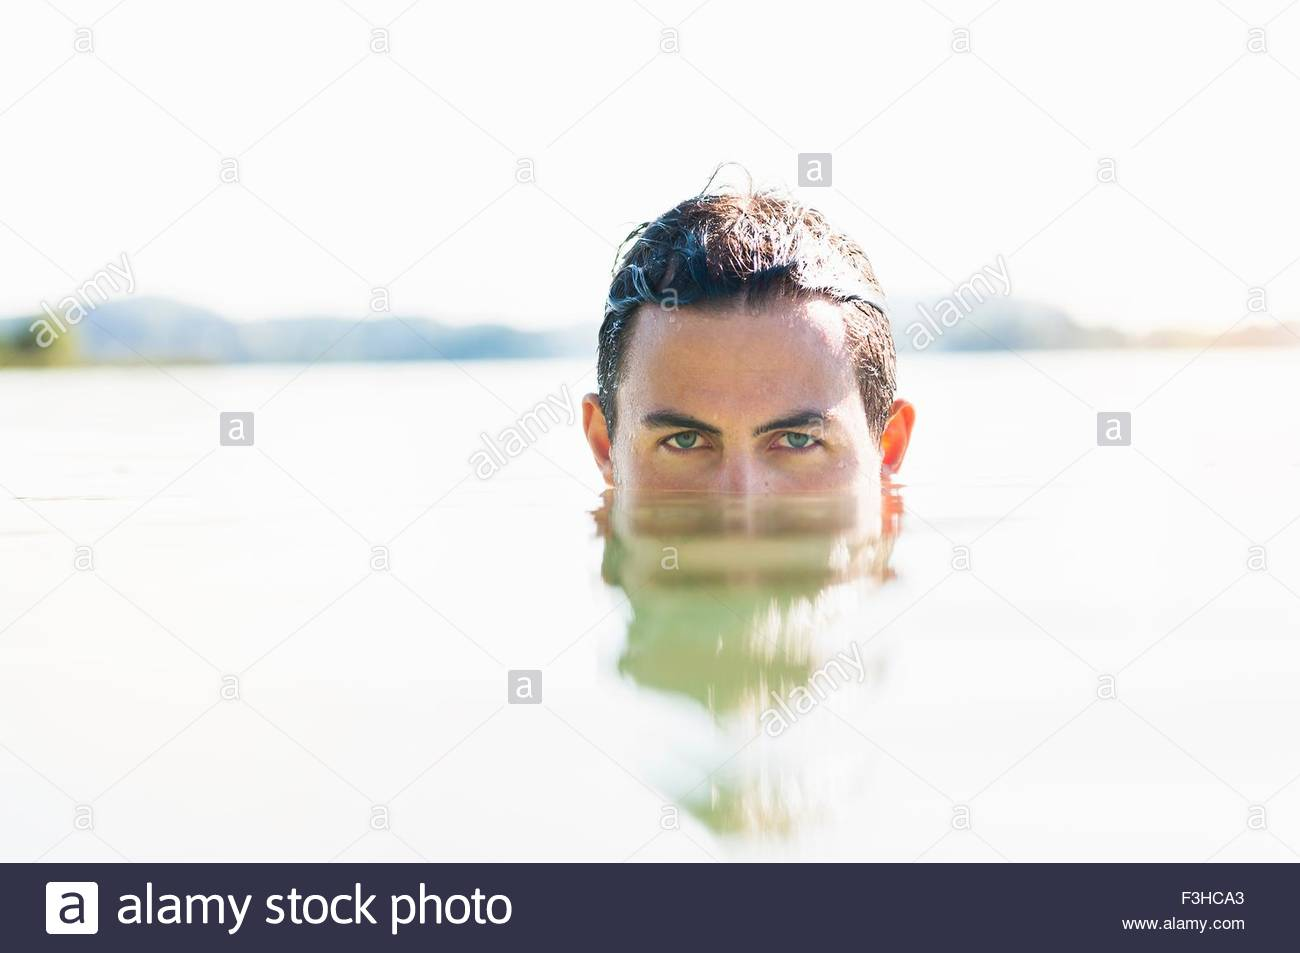 Portrait of young man with face submerged in lake, Woerthsee, Bavaria, Germany - Stock Image